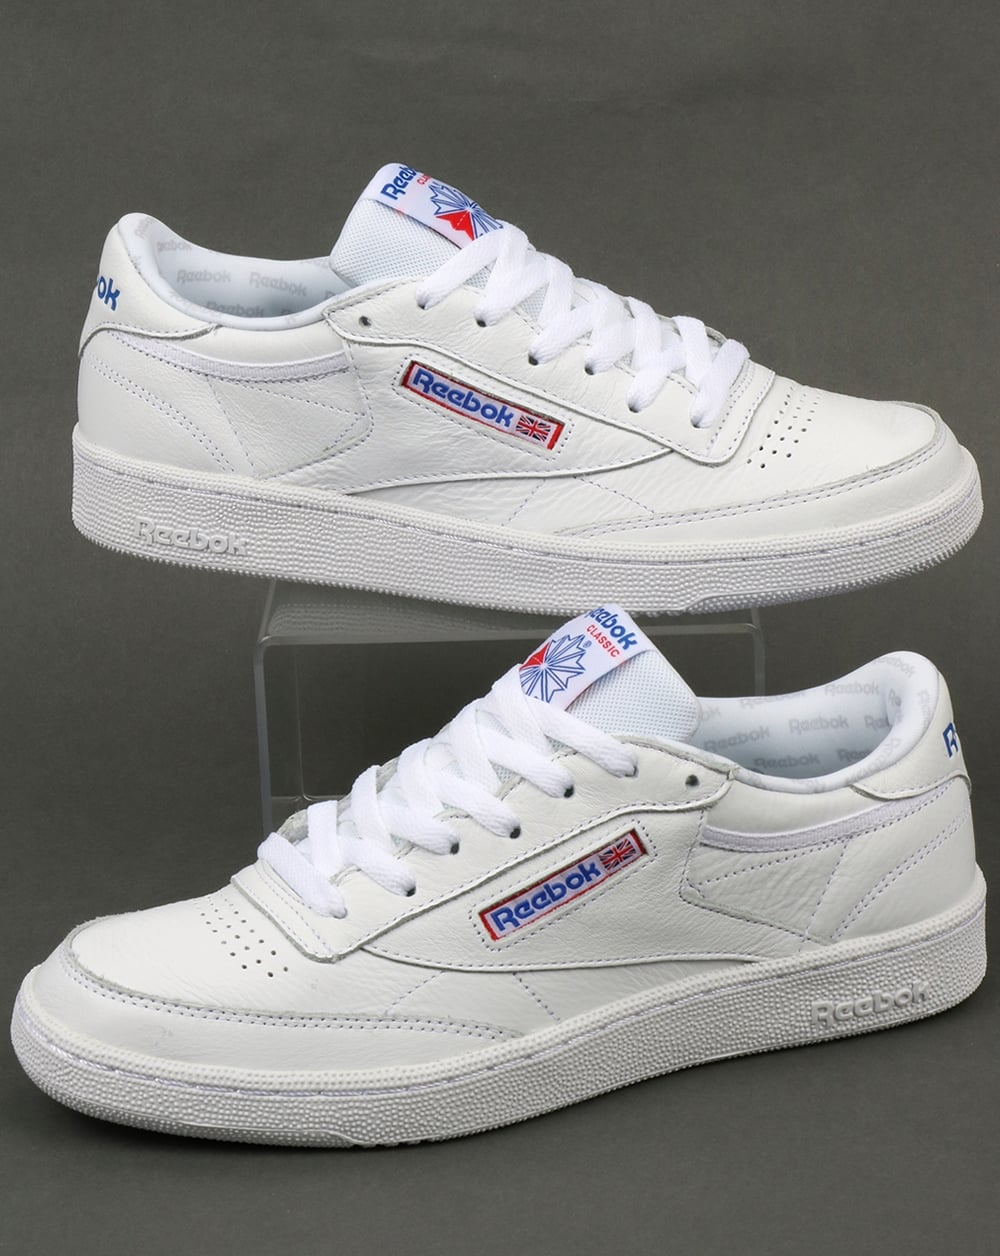 reebok club c 85 so trainers white solid grey shoes. Black Bedroom Furniture Sets. Home Design Ideas